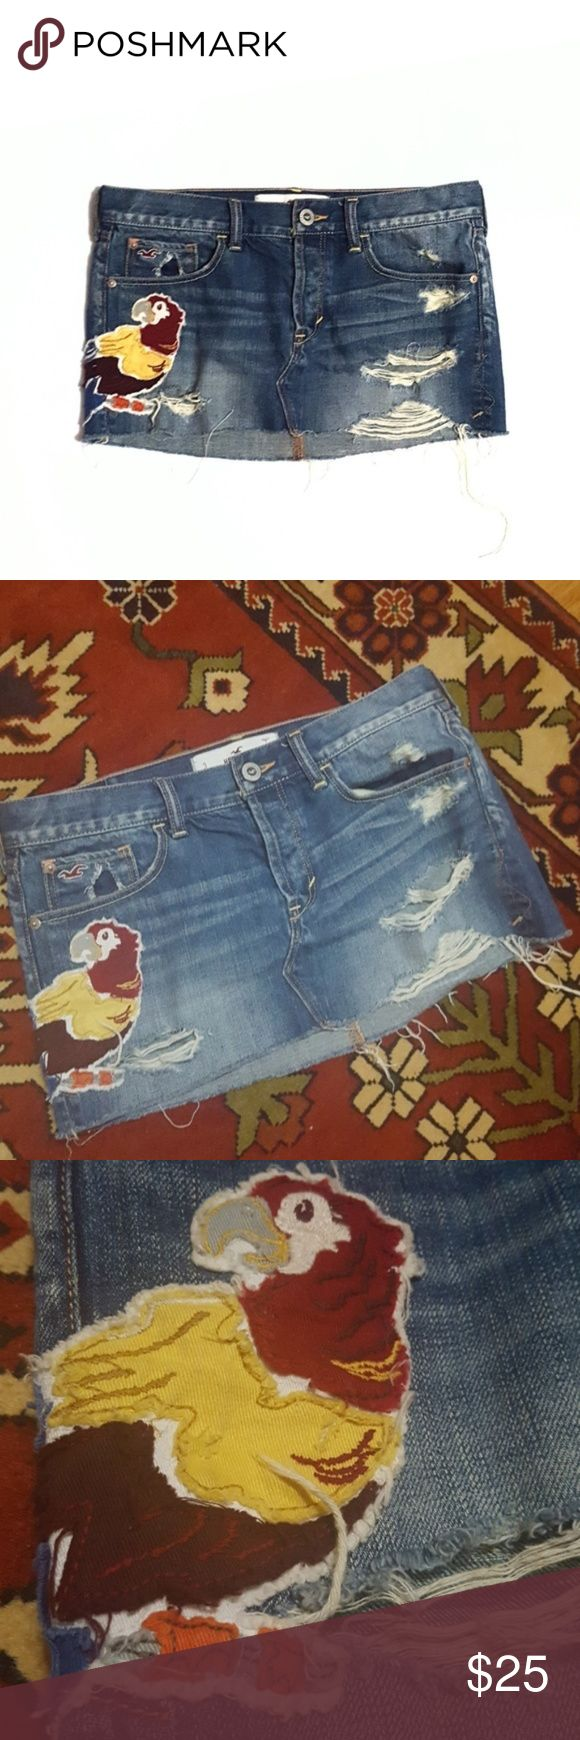 "Hollister Distressed Ripped Denim Short Mini Skirt So cute. 100% cotton. Excellent condition. Company distressed including rips and tears. Cute parrot patch.  Waist approx 16"" across when flat, length 9 3/4"" (front), 12"" (back). Hollister Skirts Mini"